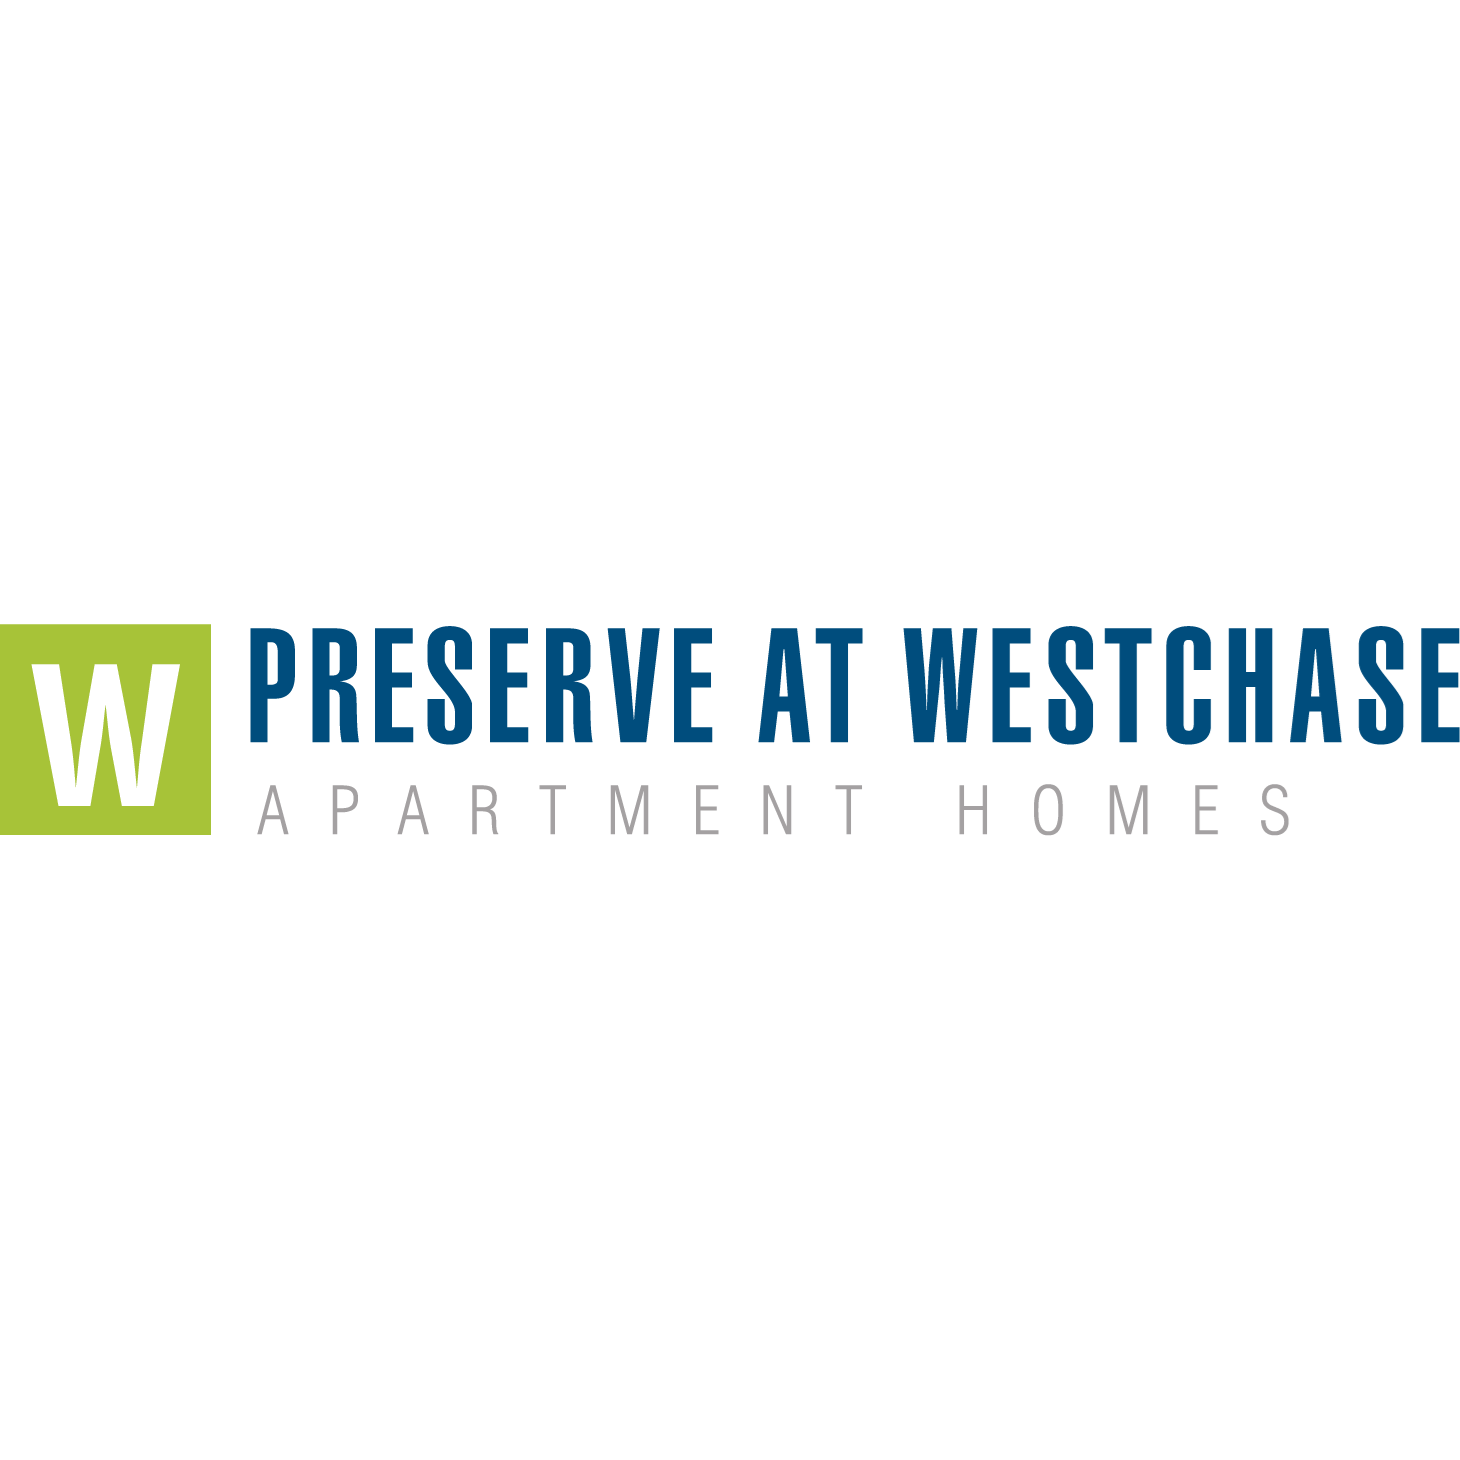 The Preserve at Westchase